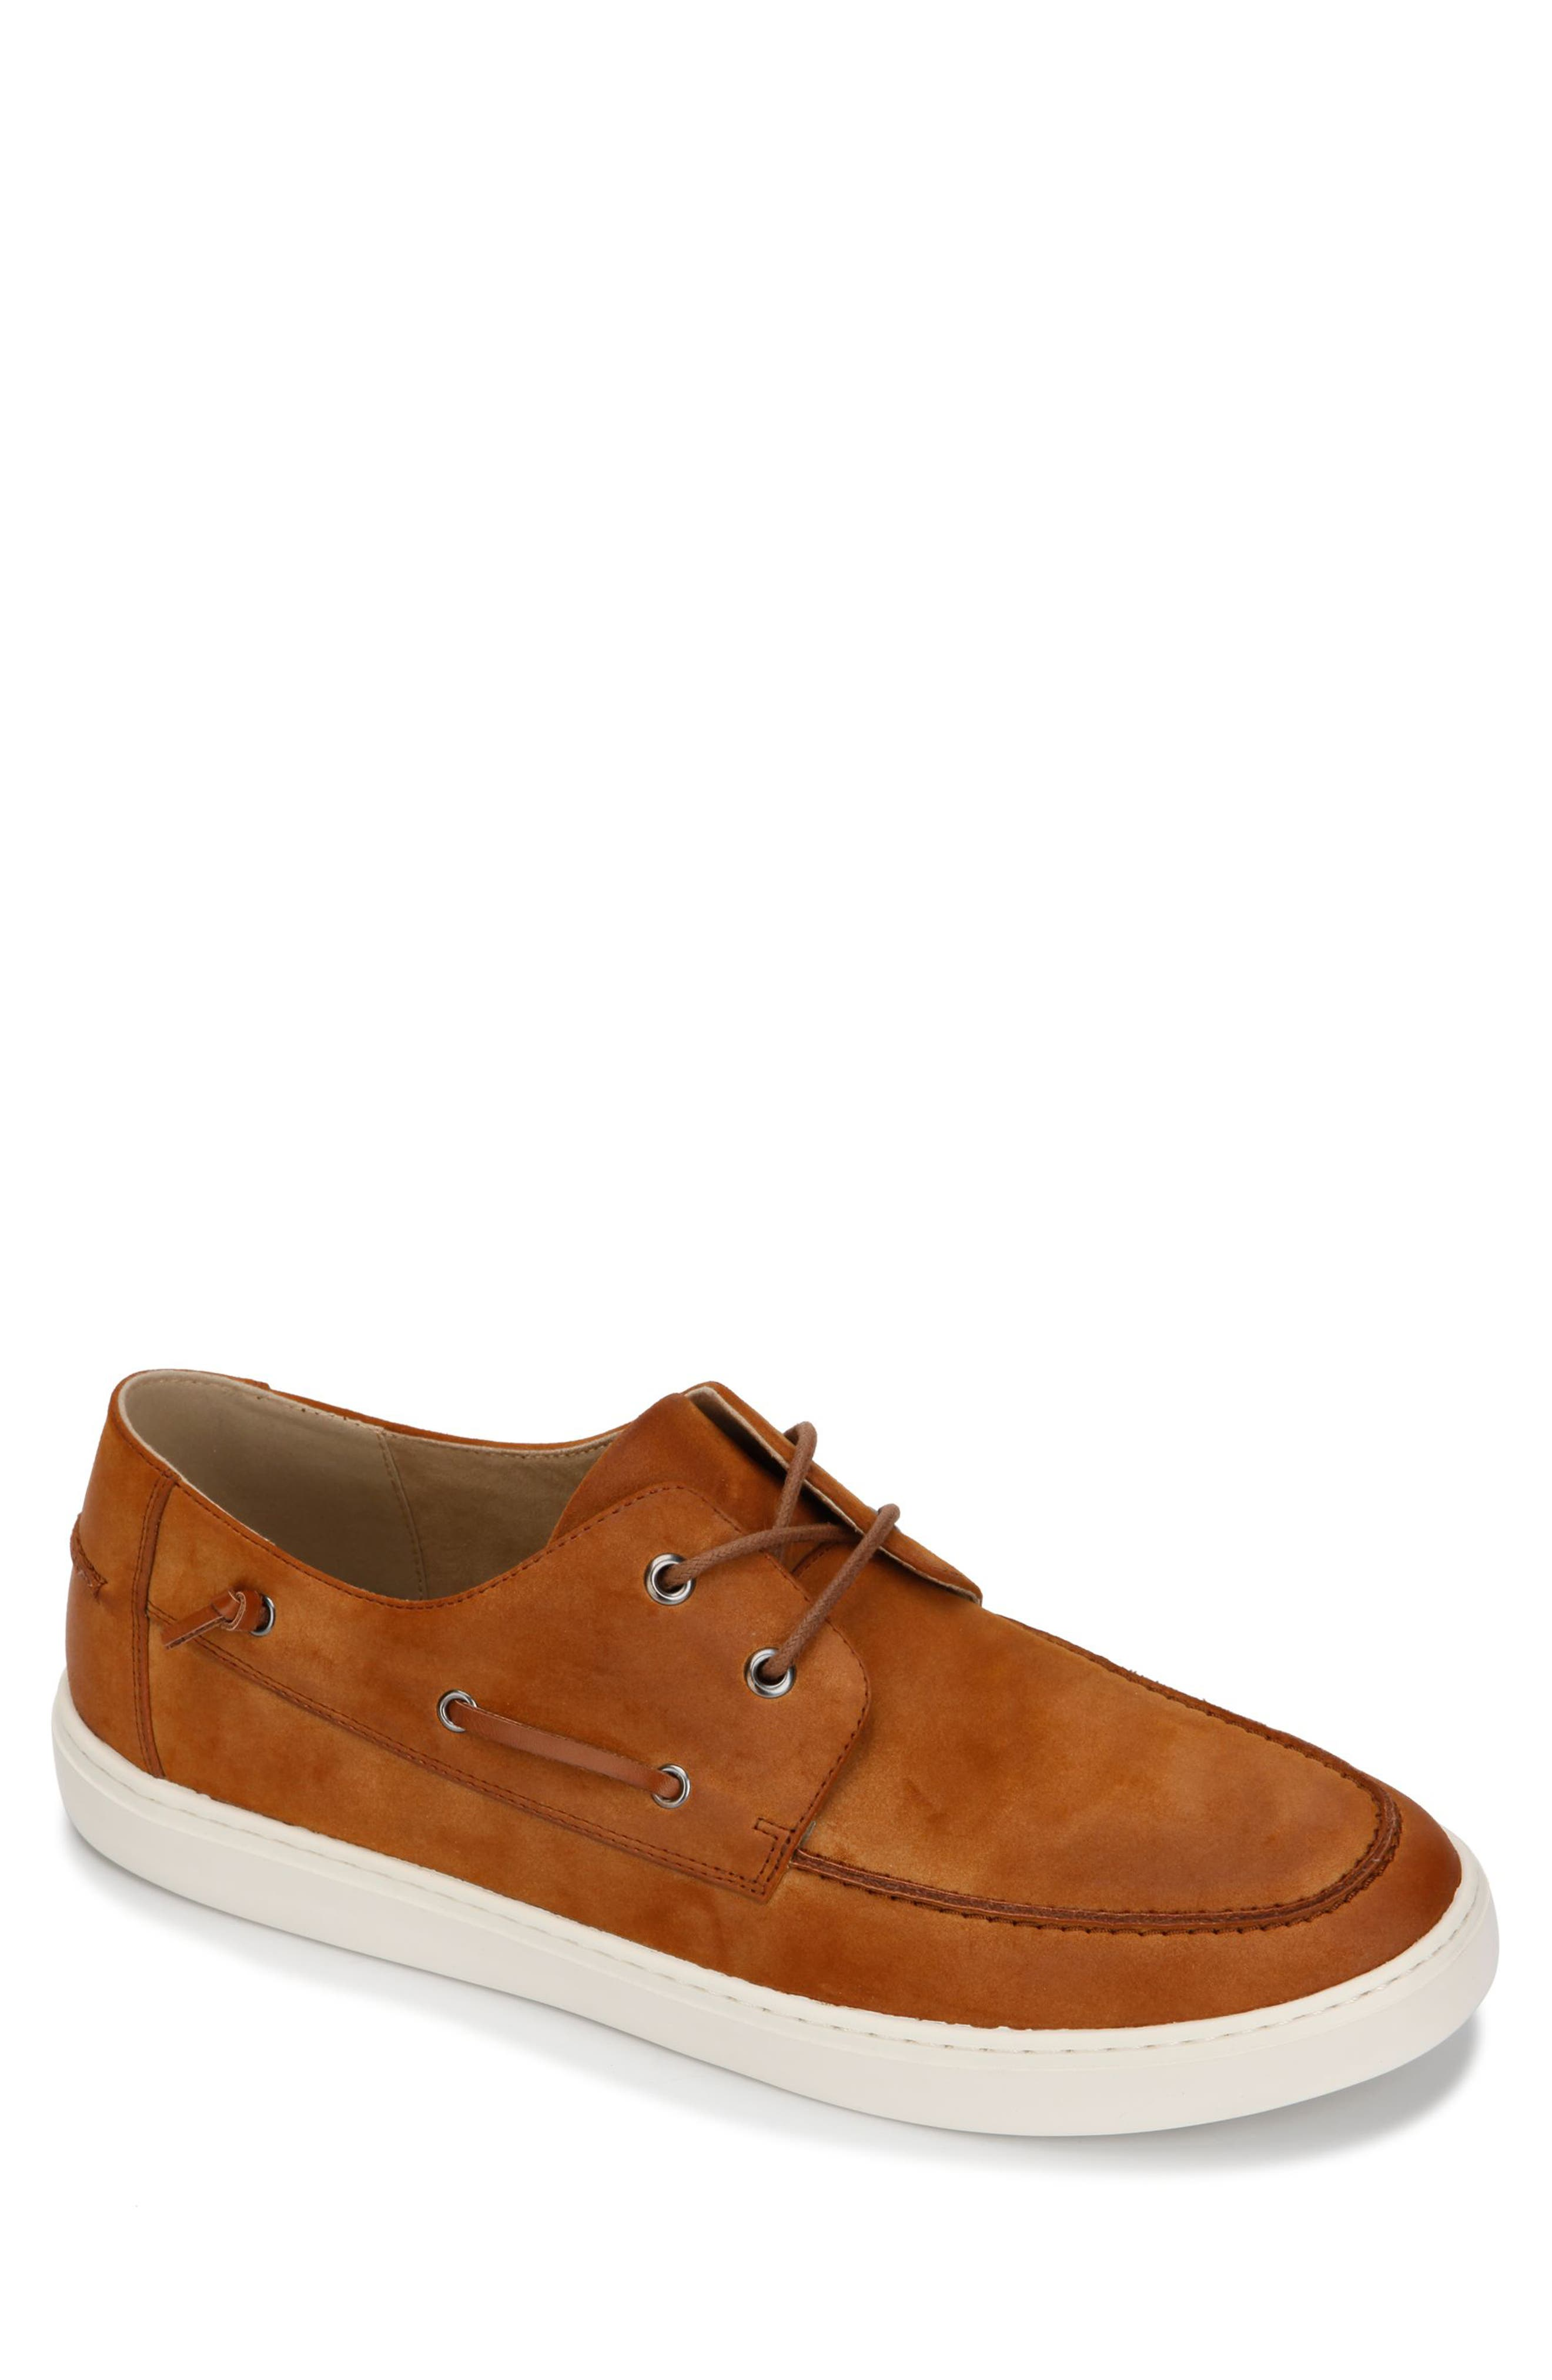 Reaction Kenneth Cole Indy Boat Shoe- Brown